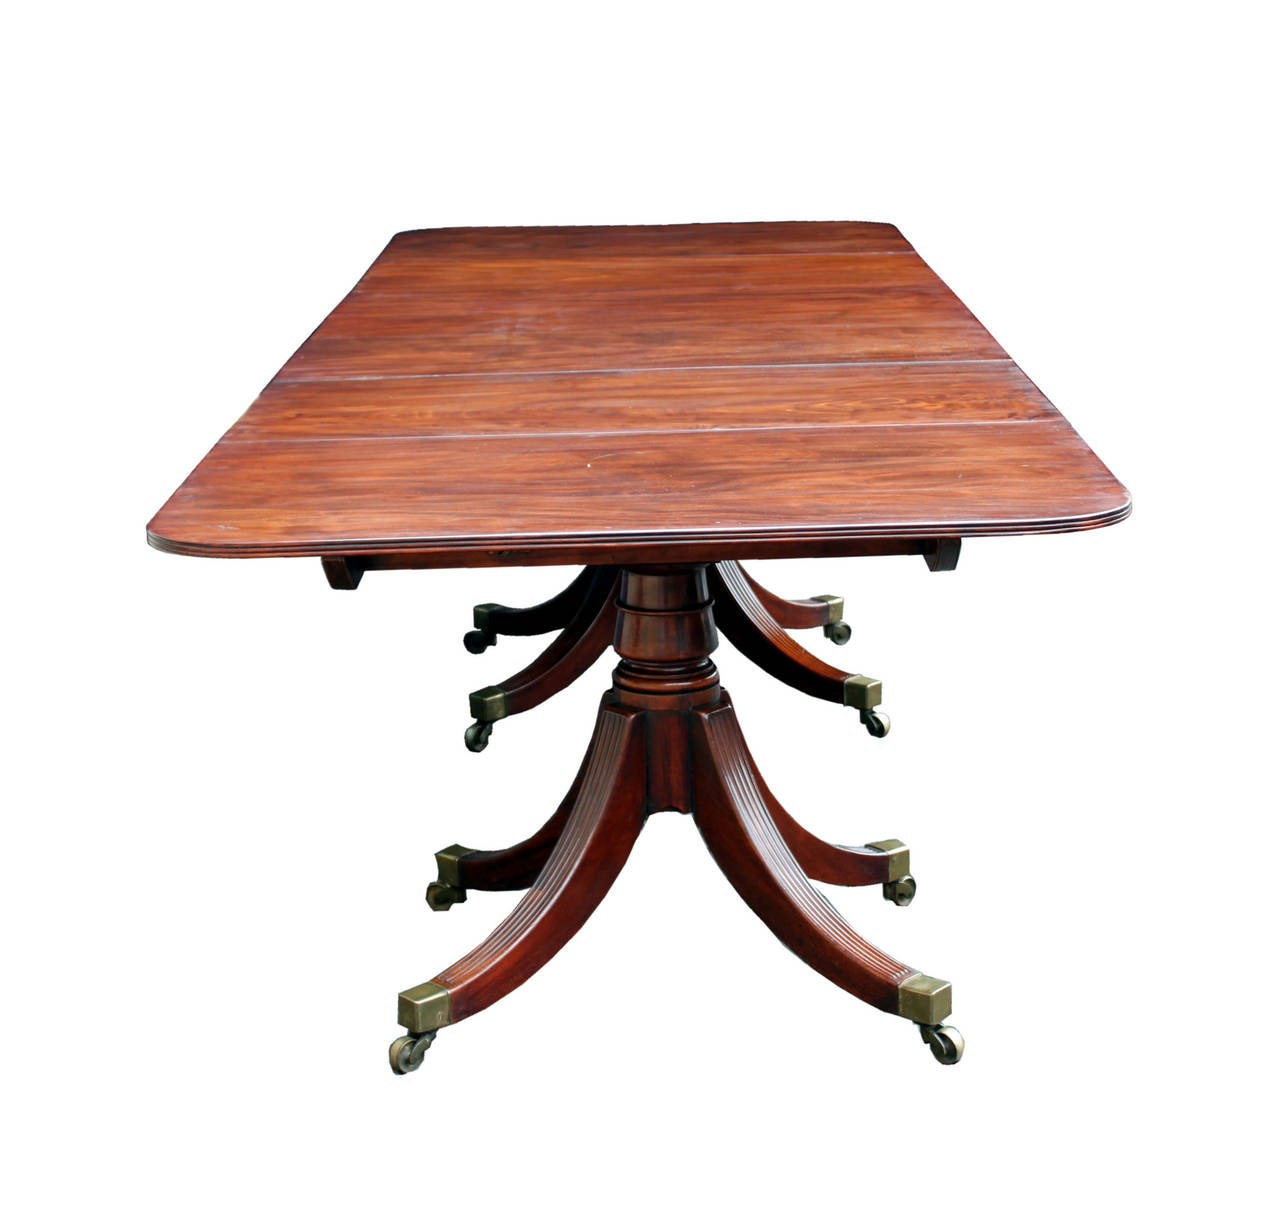 Antique three pillar dining table at 1stdibs for Pillar dining table